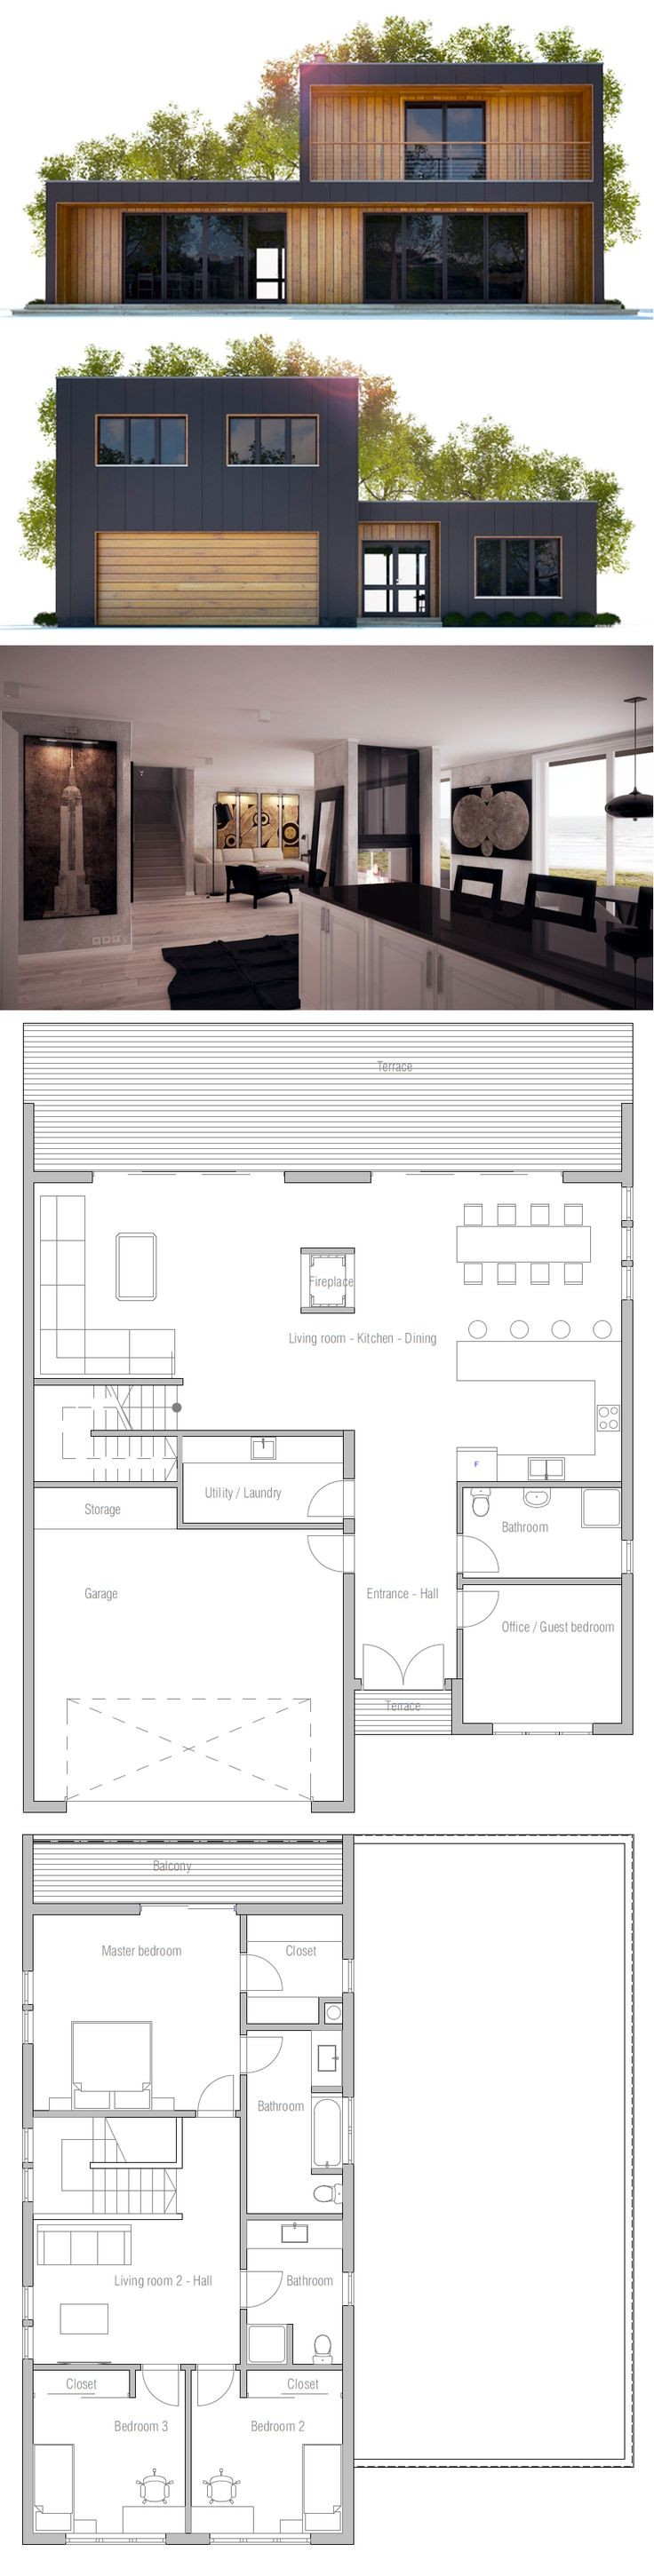 438 best House plans inspiration images on Pinterest